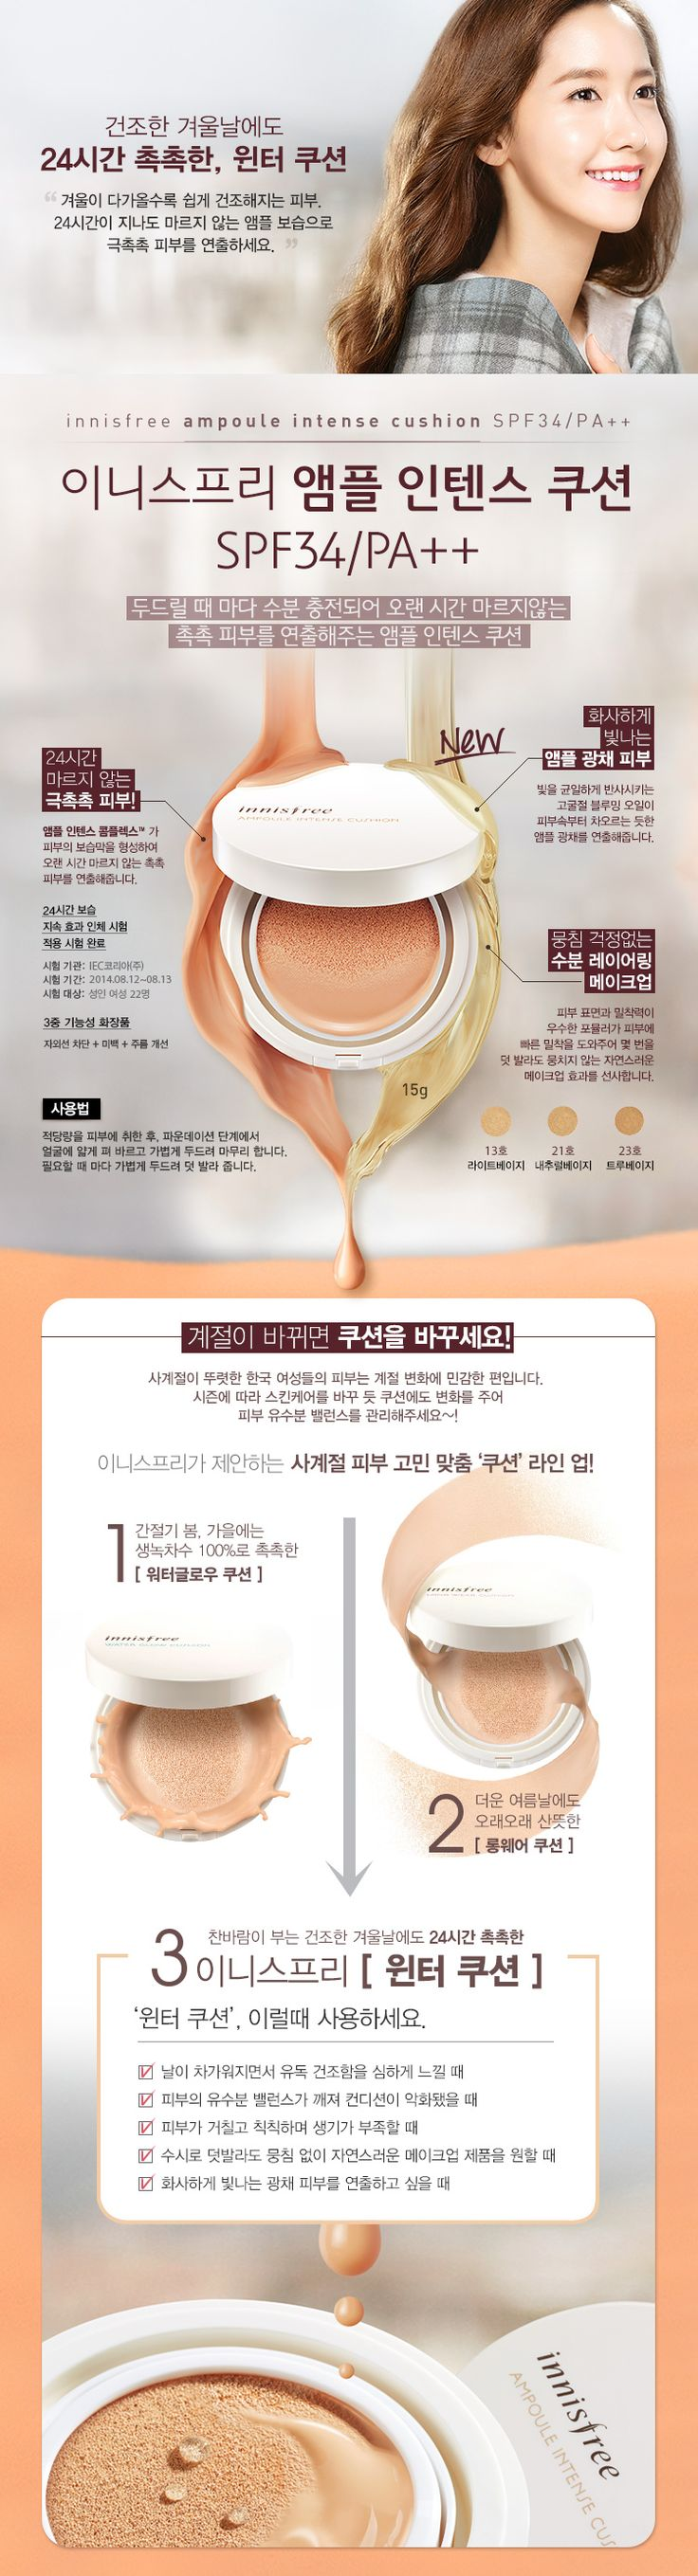 Innisfree Ampoule Intense Cushion SPF34 PA++ | The Cutest Makeup